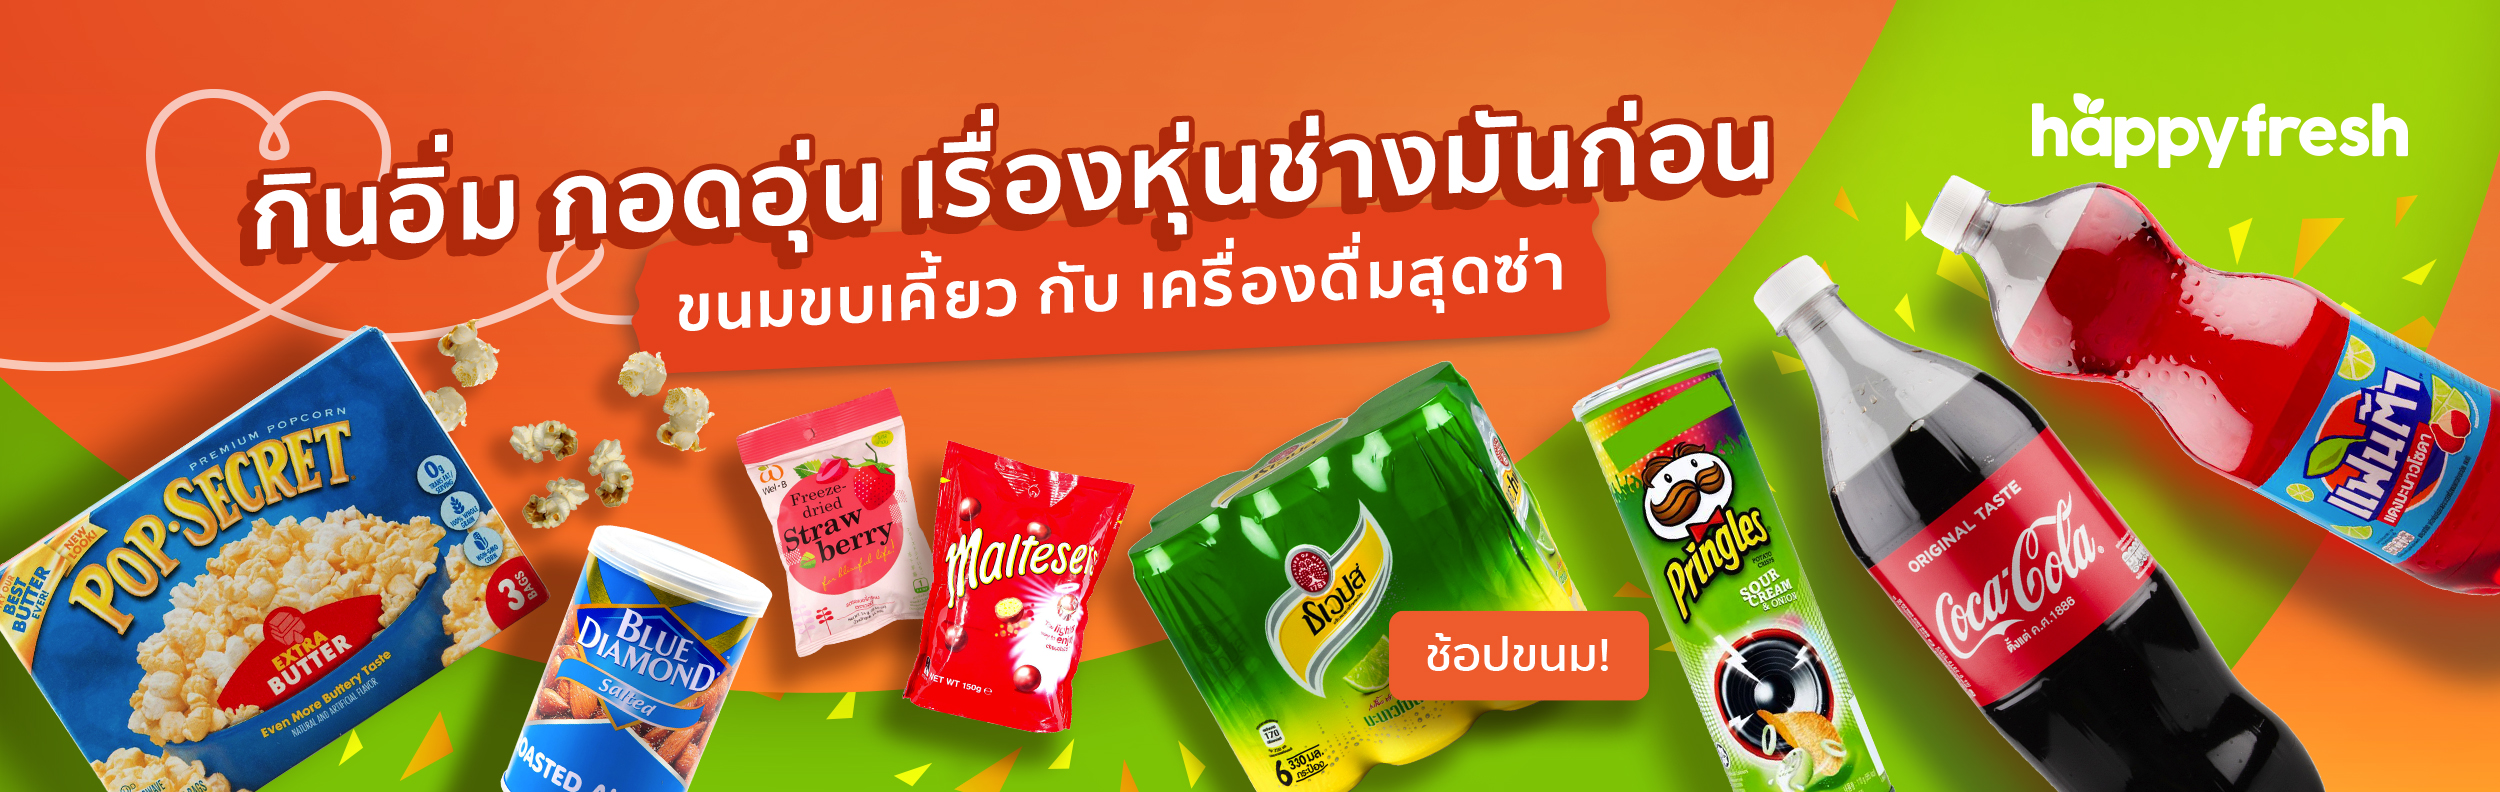 HappyFresh_Promote_Products_Banner_Snacks_And_Drinks